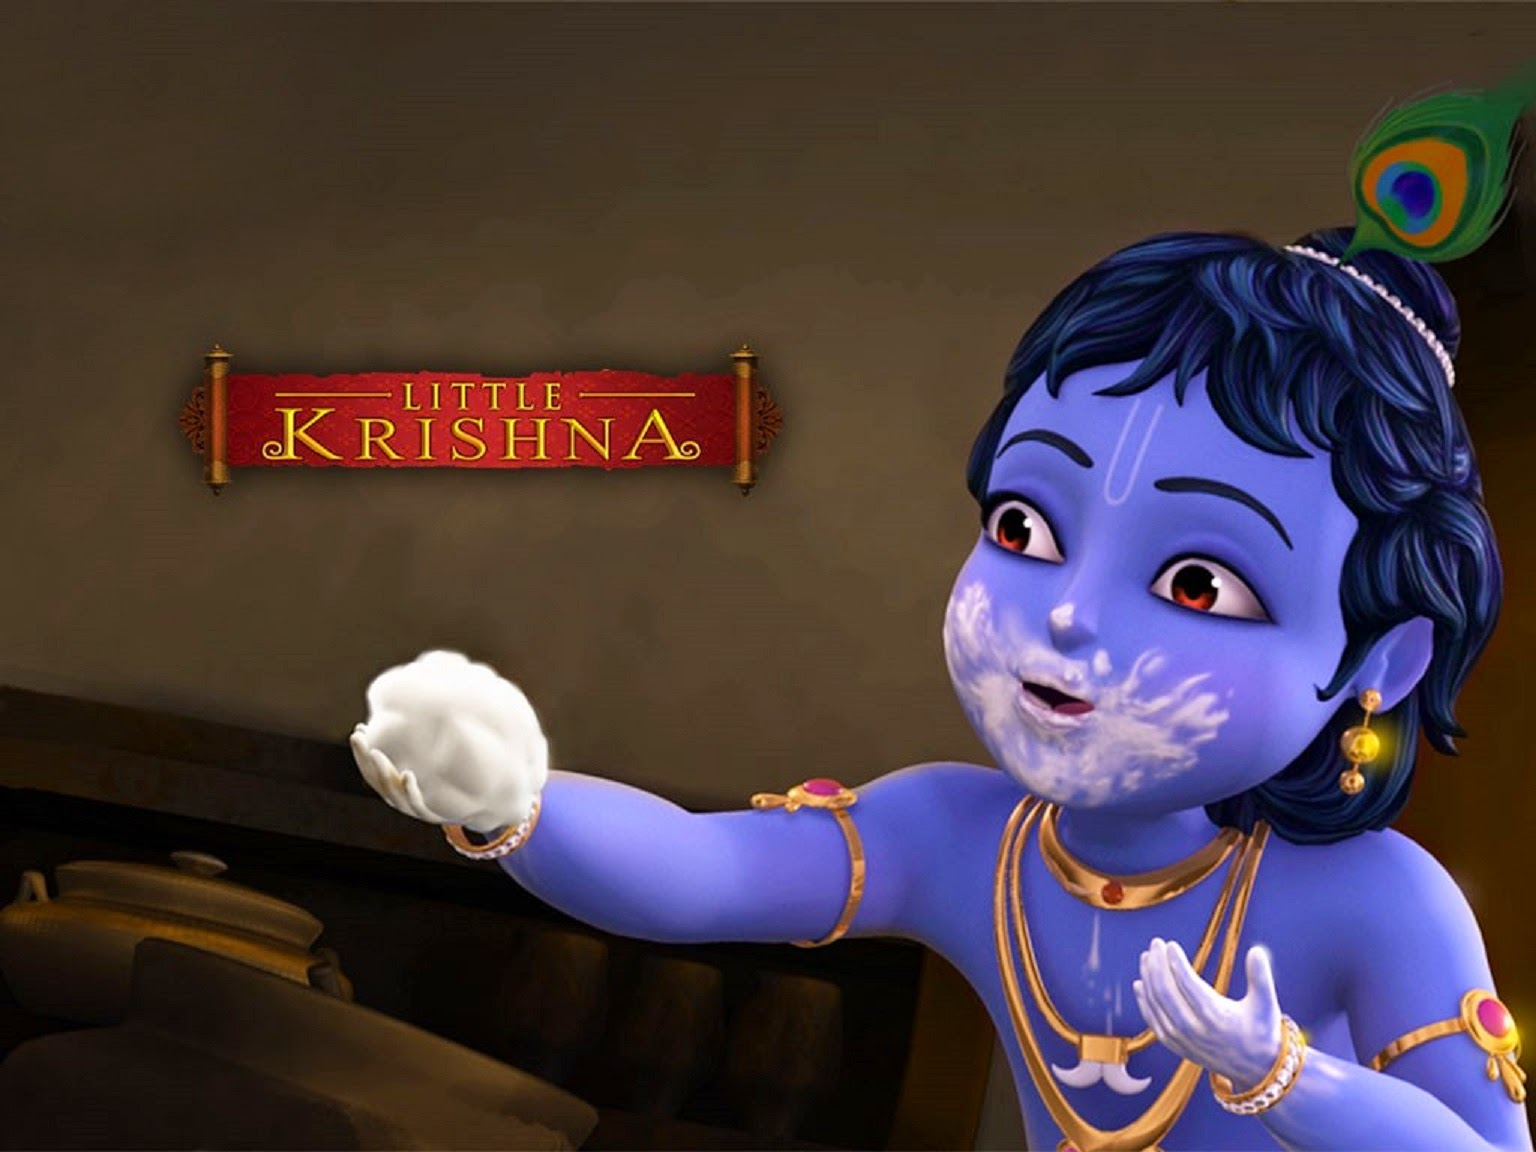 Disney%2BCartoon%2BLittle%2BKrishna%2BHD%2BWallpapers1